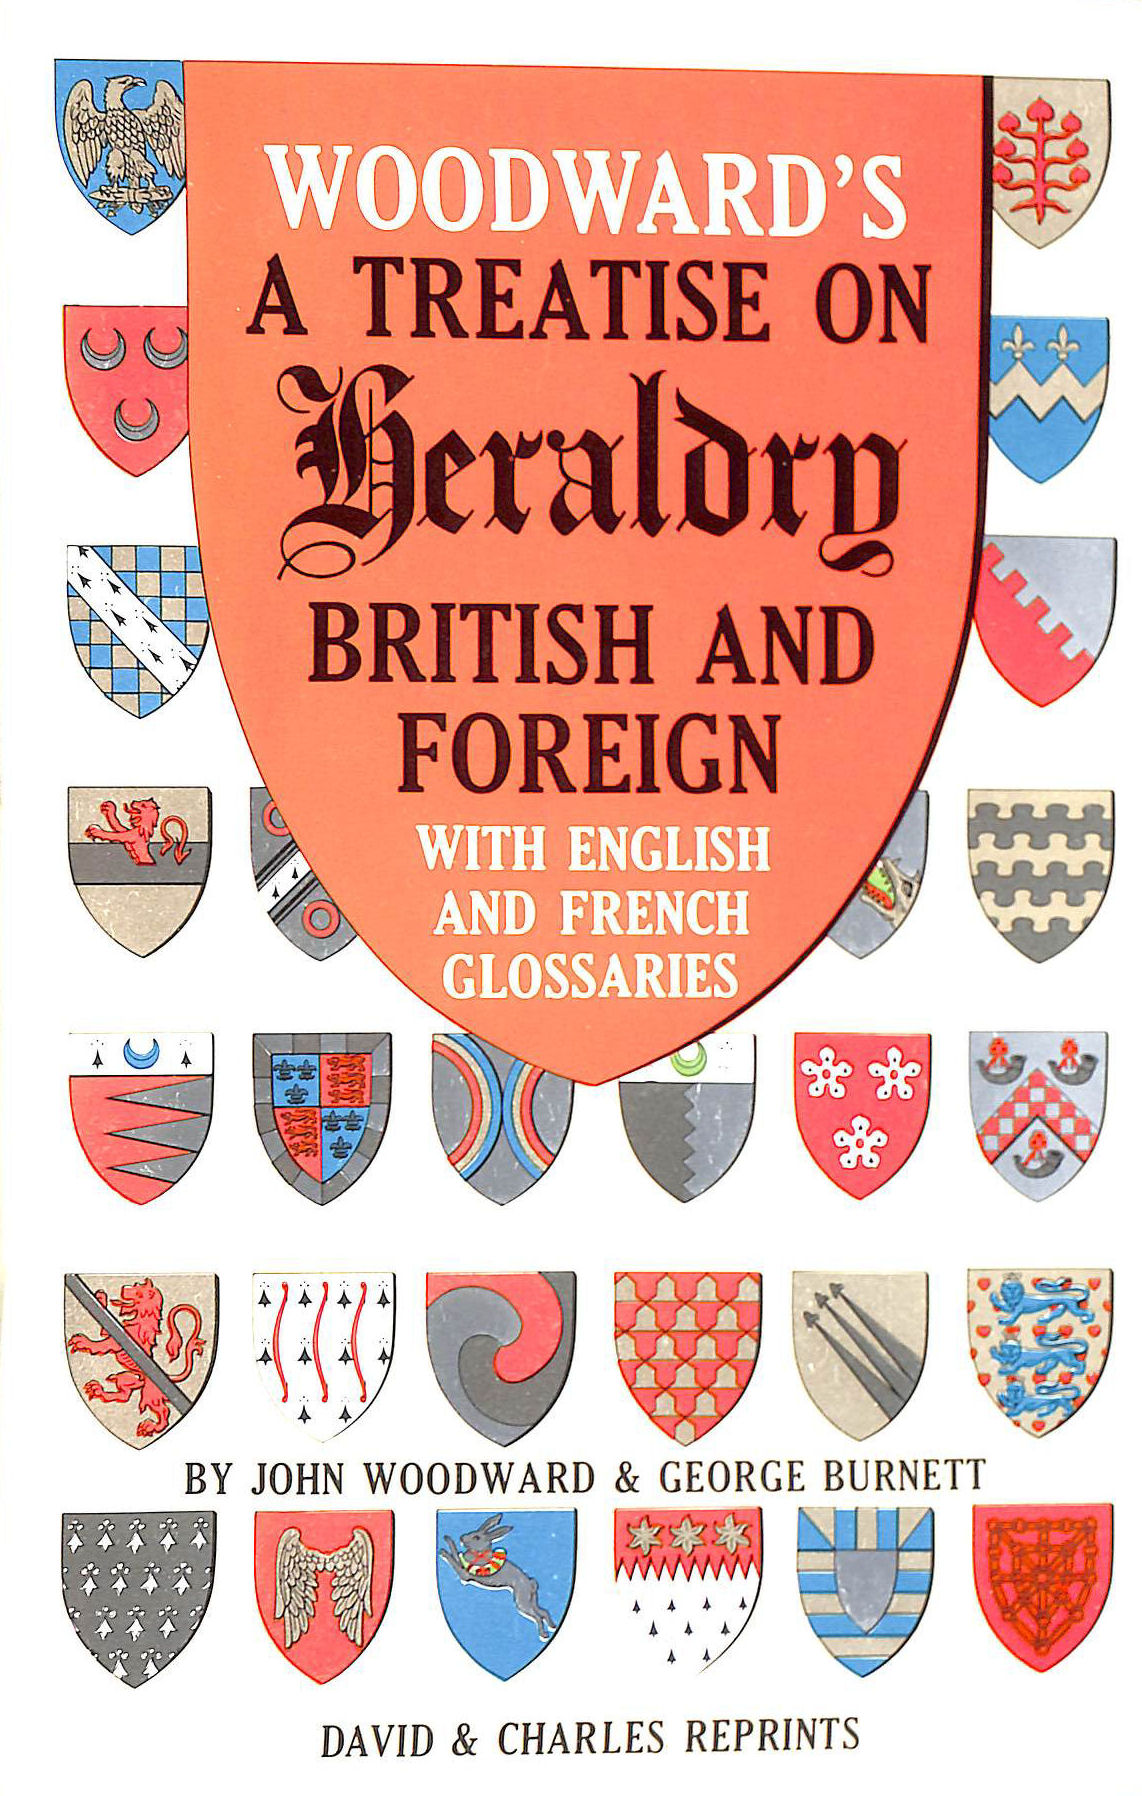 Image for Treatise on Heraldry: British and Foreign with English and French Glossaries (David & Charles reprints)